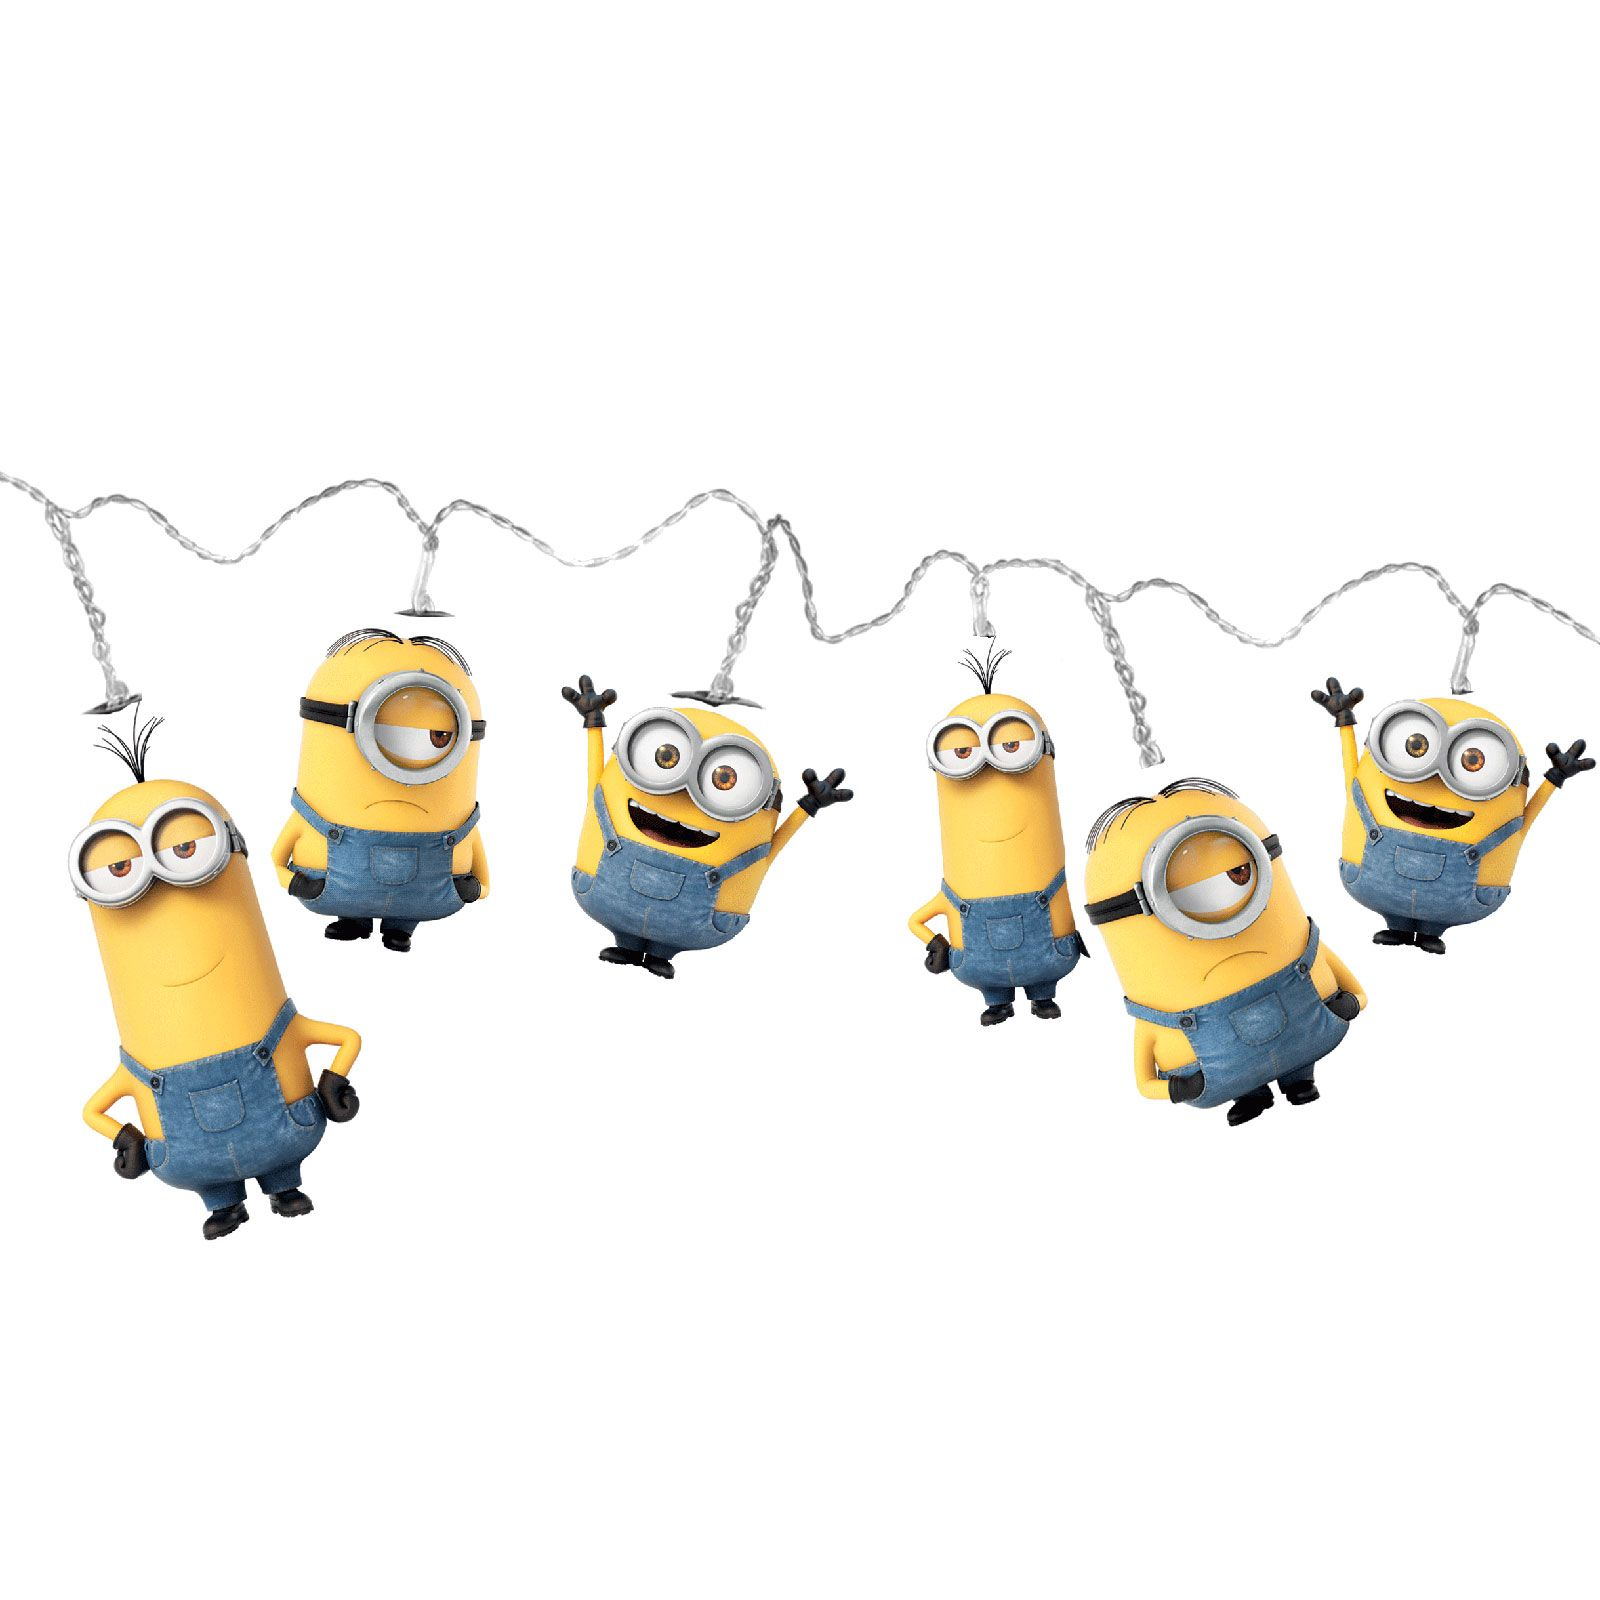 String Lights Minions Star Wars Despicable Me Minions Kids